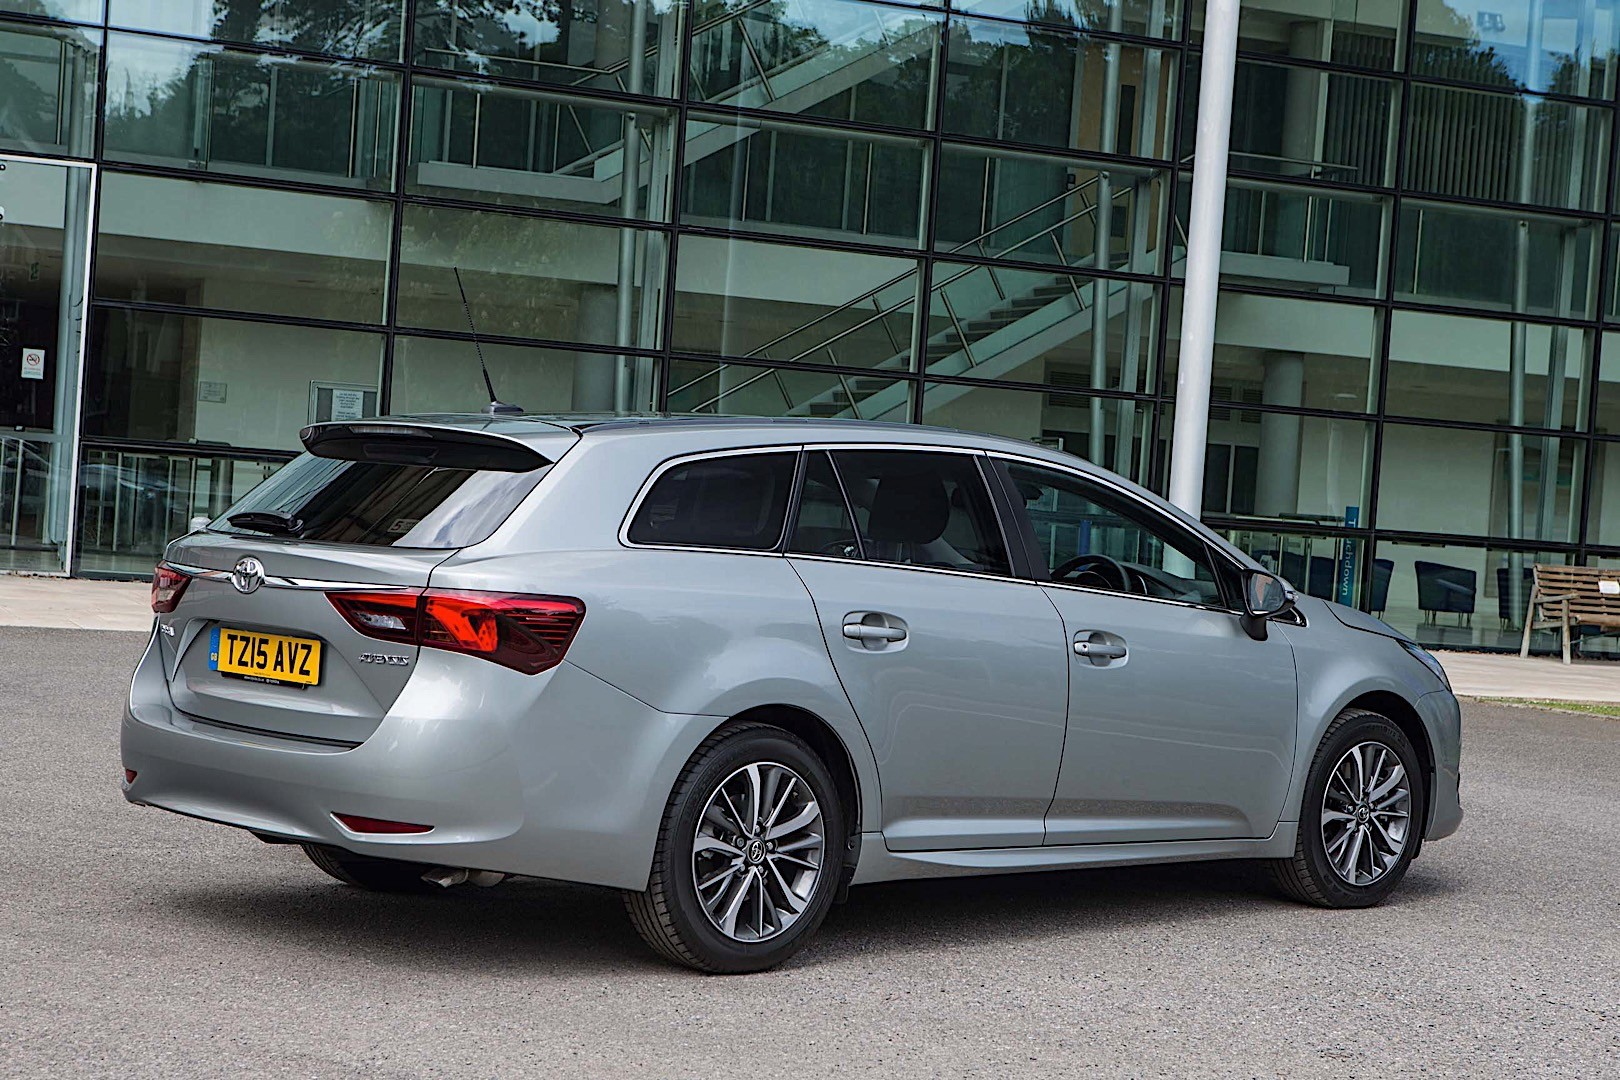 toyota avensis wagon specs 2015 2016 2017 2018 autoevolution. Black Bedroom Furniture Sets. Home Design Ideas